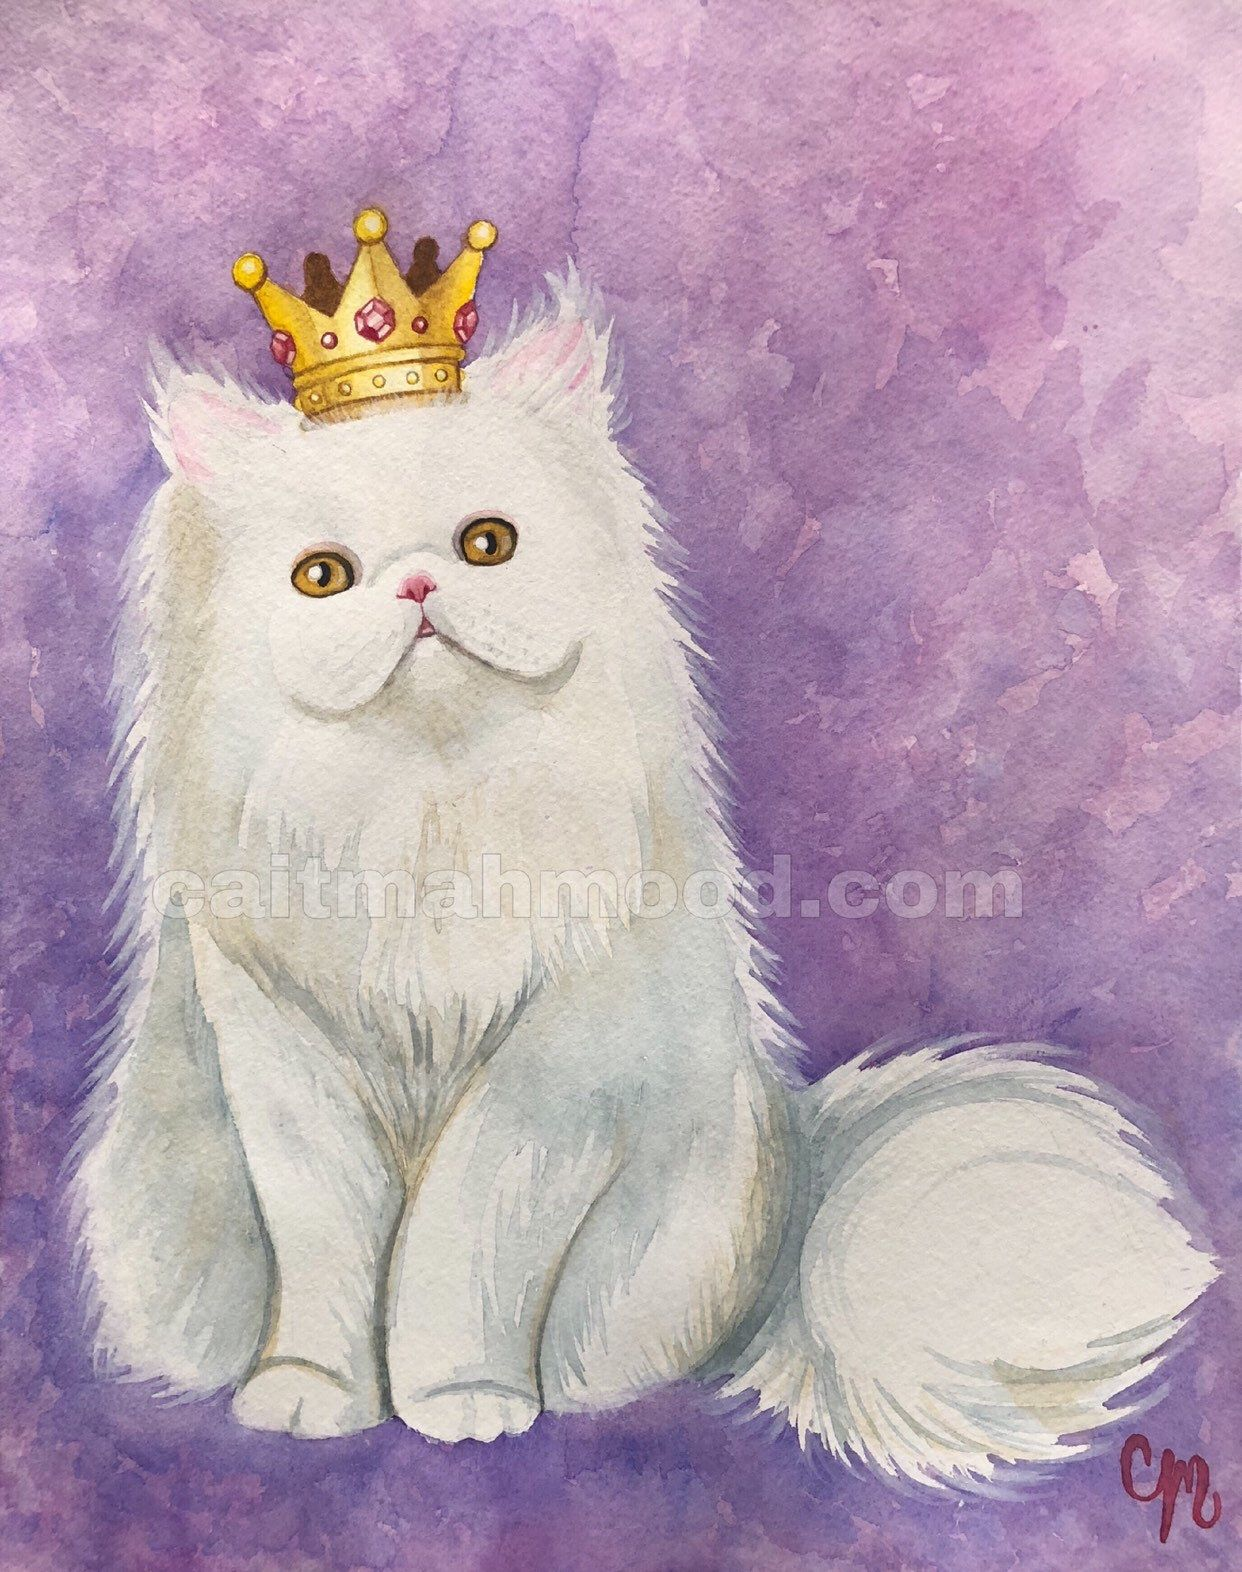 Excited to share this item from my #etsy shop: Purrfect Persian - Fine Art Print #persiancat #art